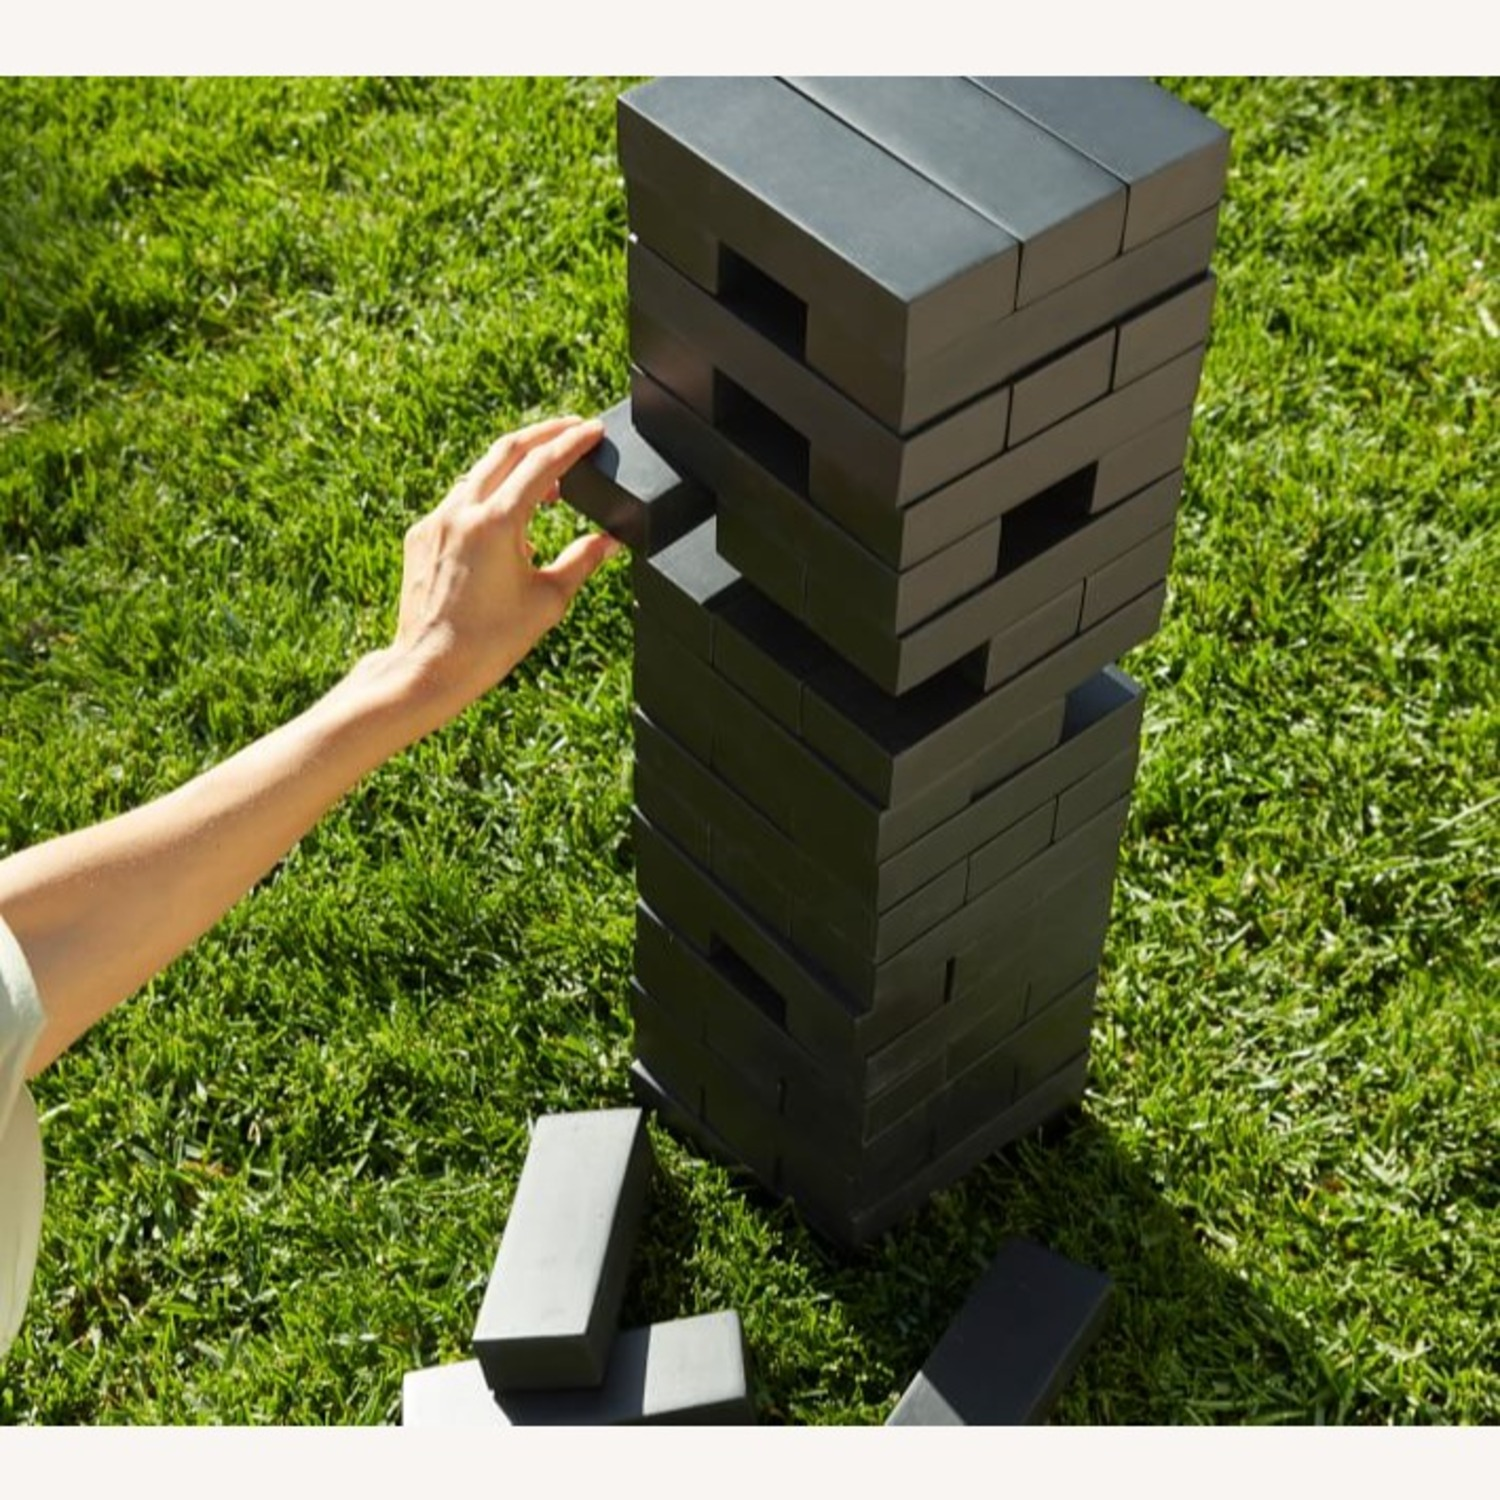 Pottery Barn Outdoor Xl Tumbling Tower,Black - image-1